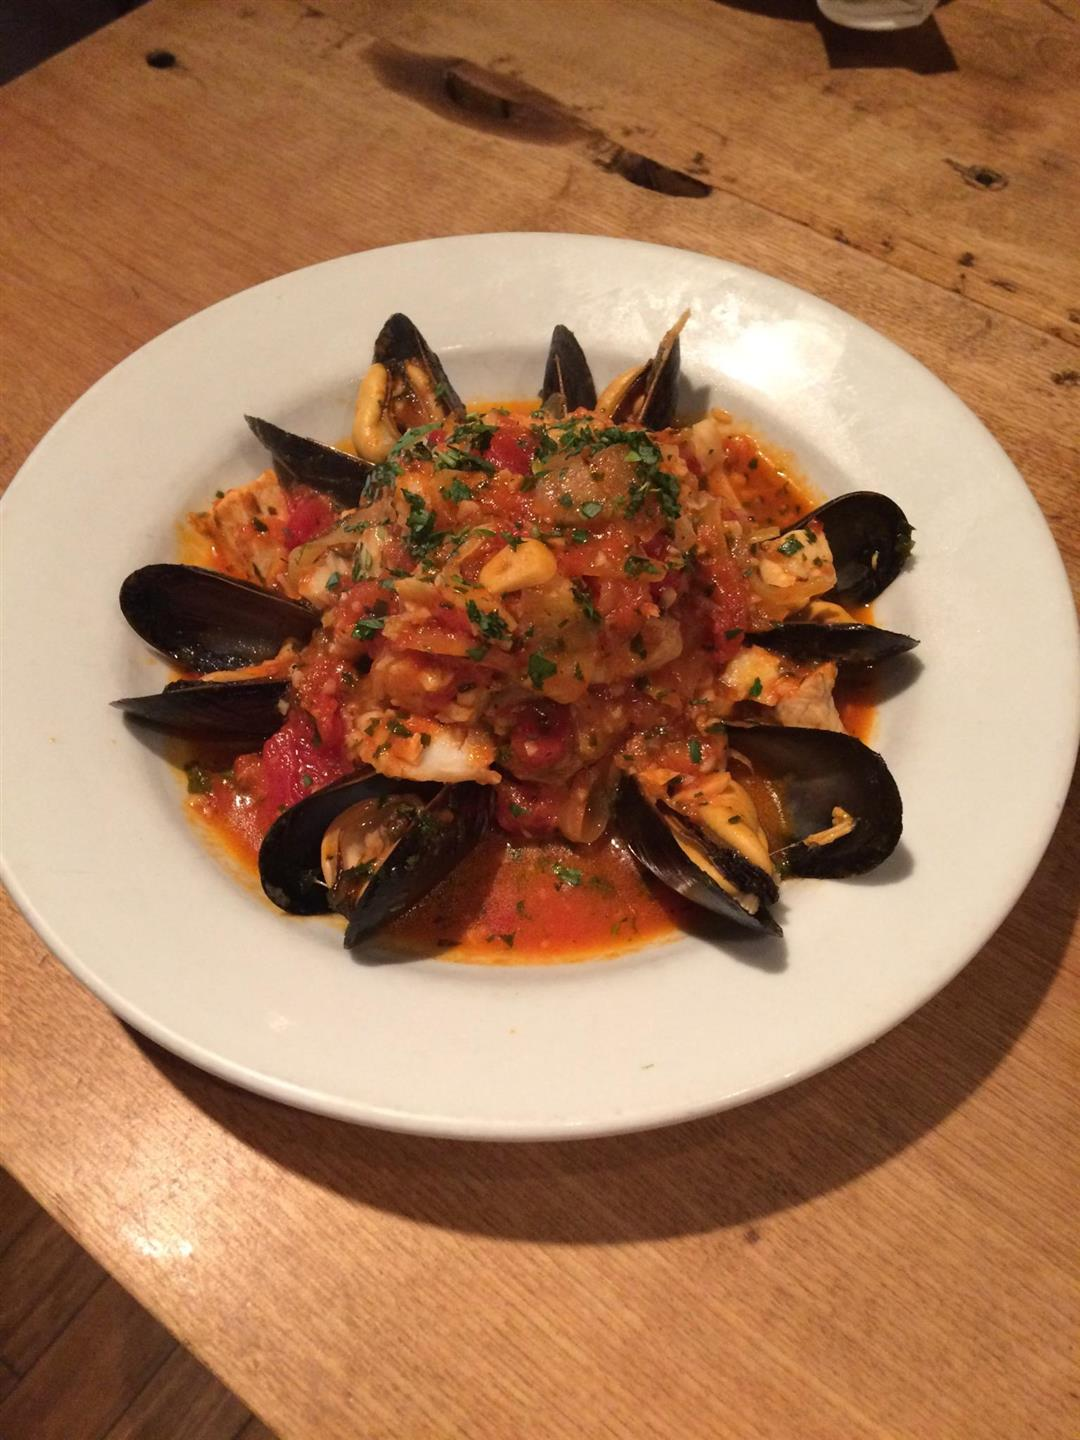 Mussels with sherry wine, garlic and marinara